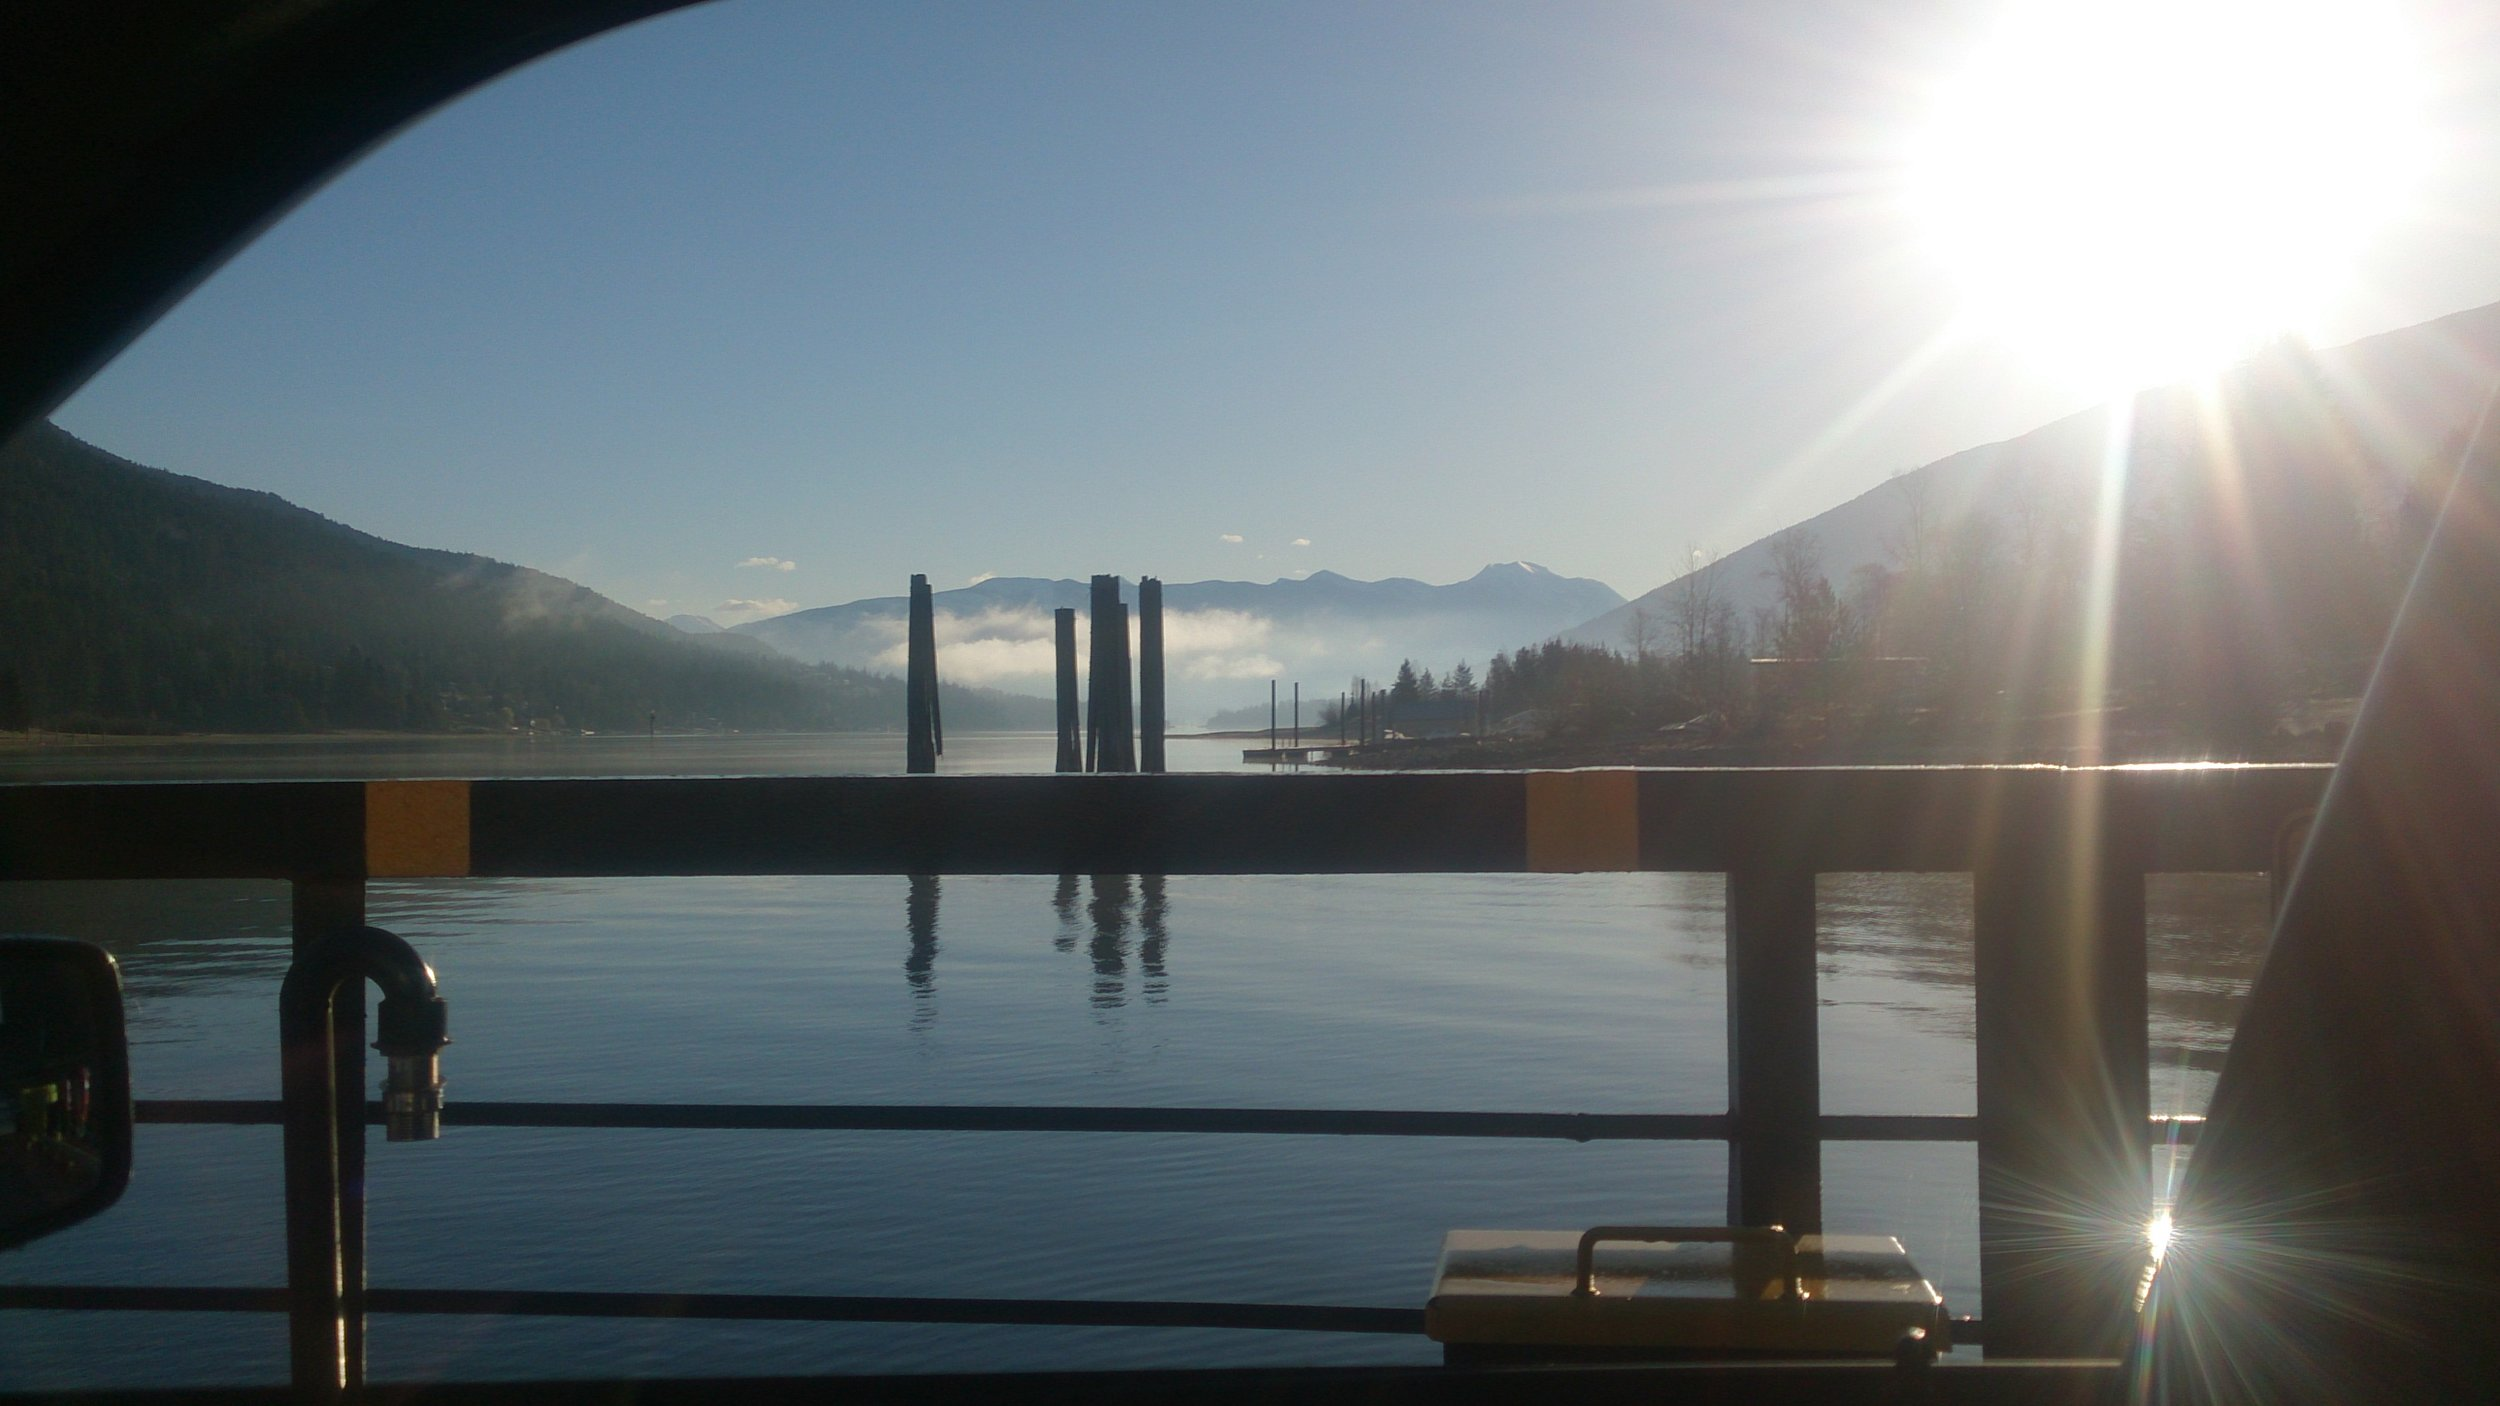 Photo taken on the cable ferry crossing at Harrop/Procter, BC